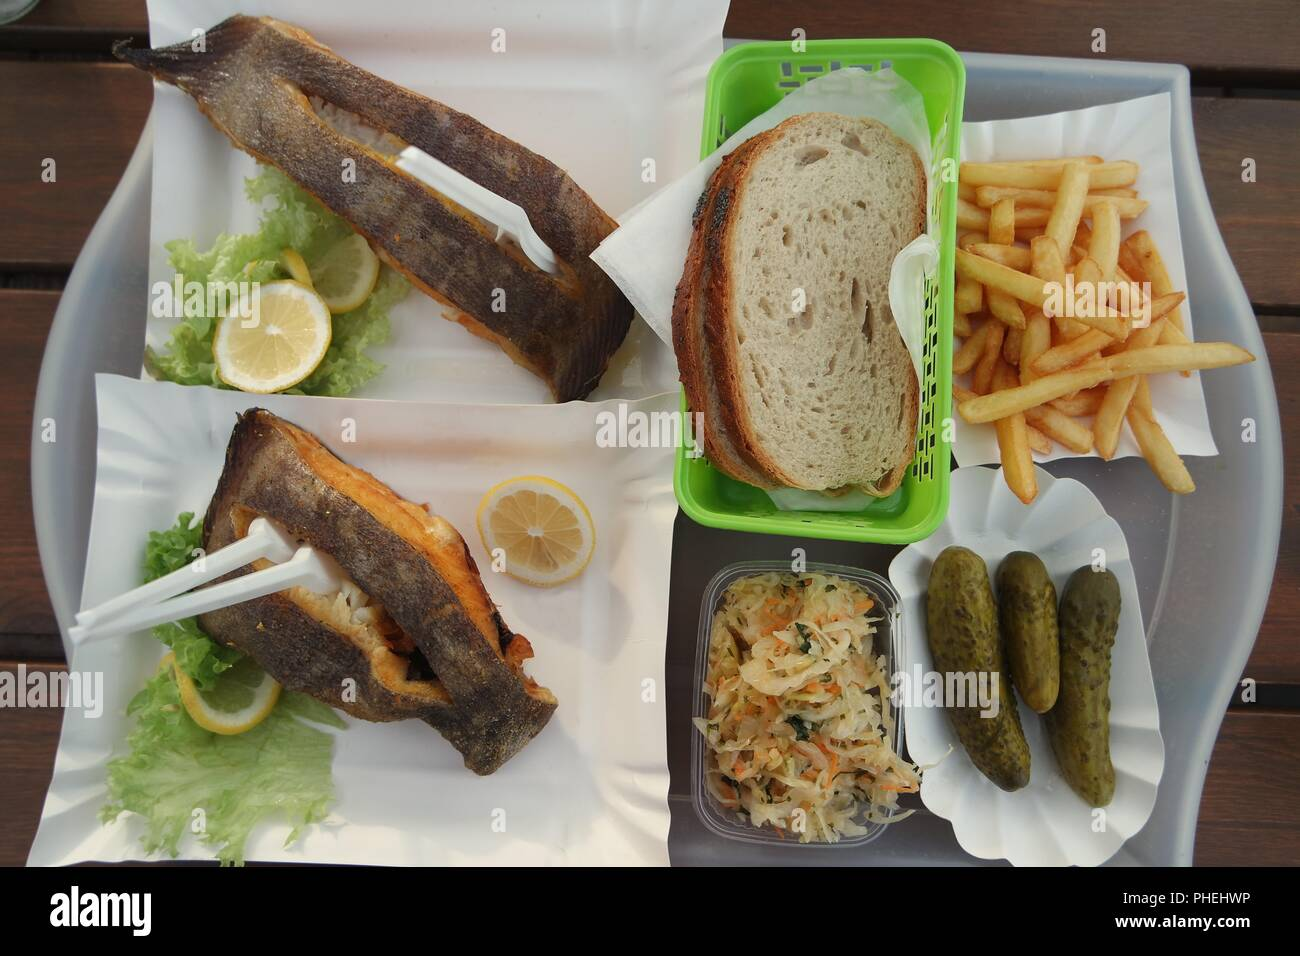 Fried fish food outdoors Stock Photo